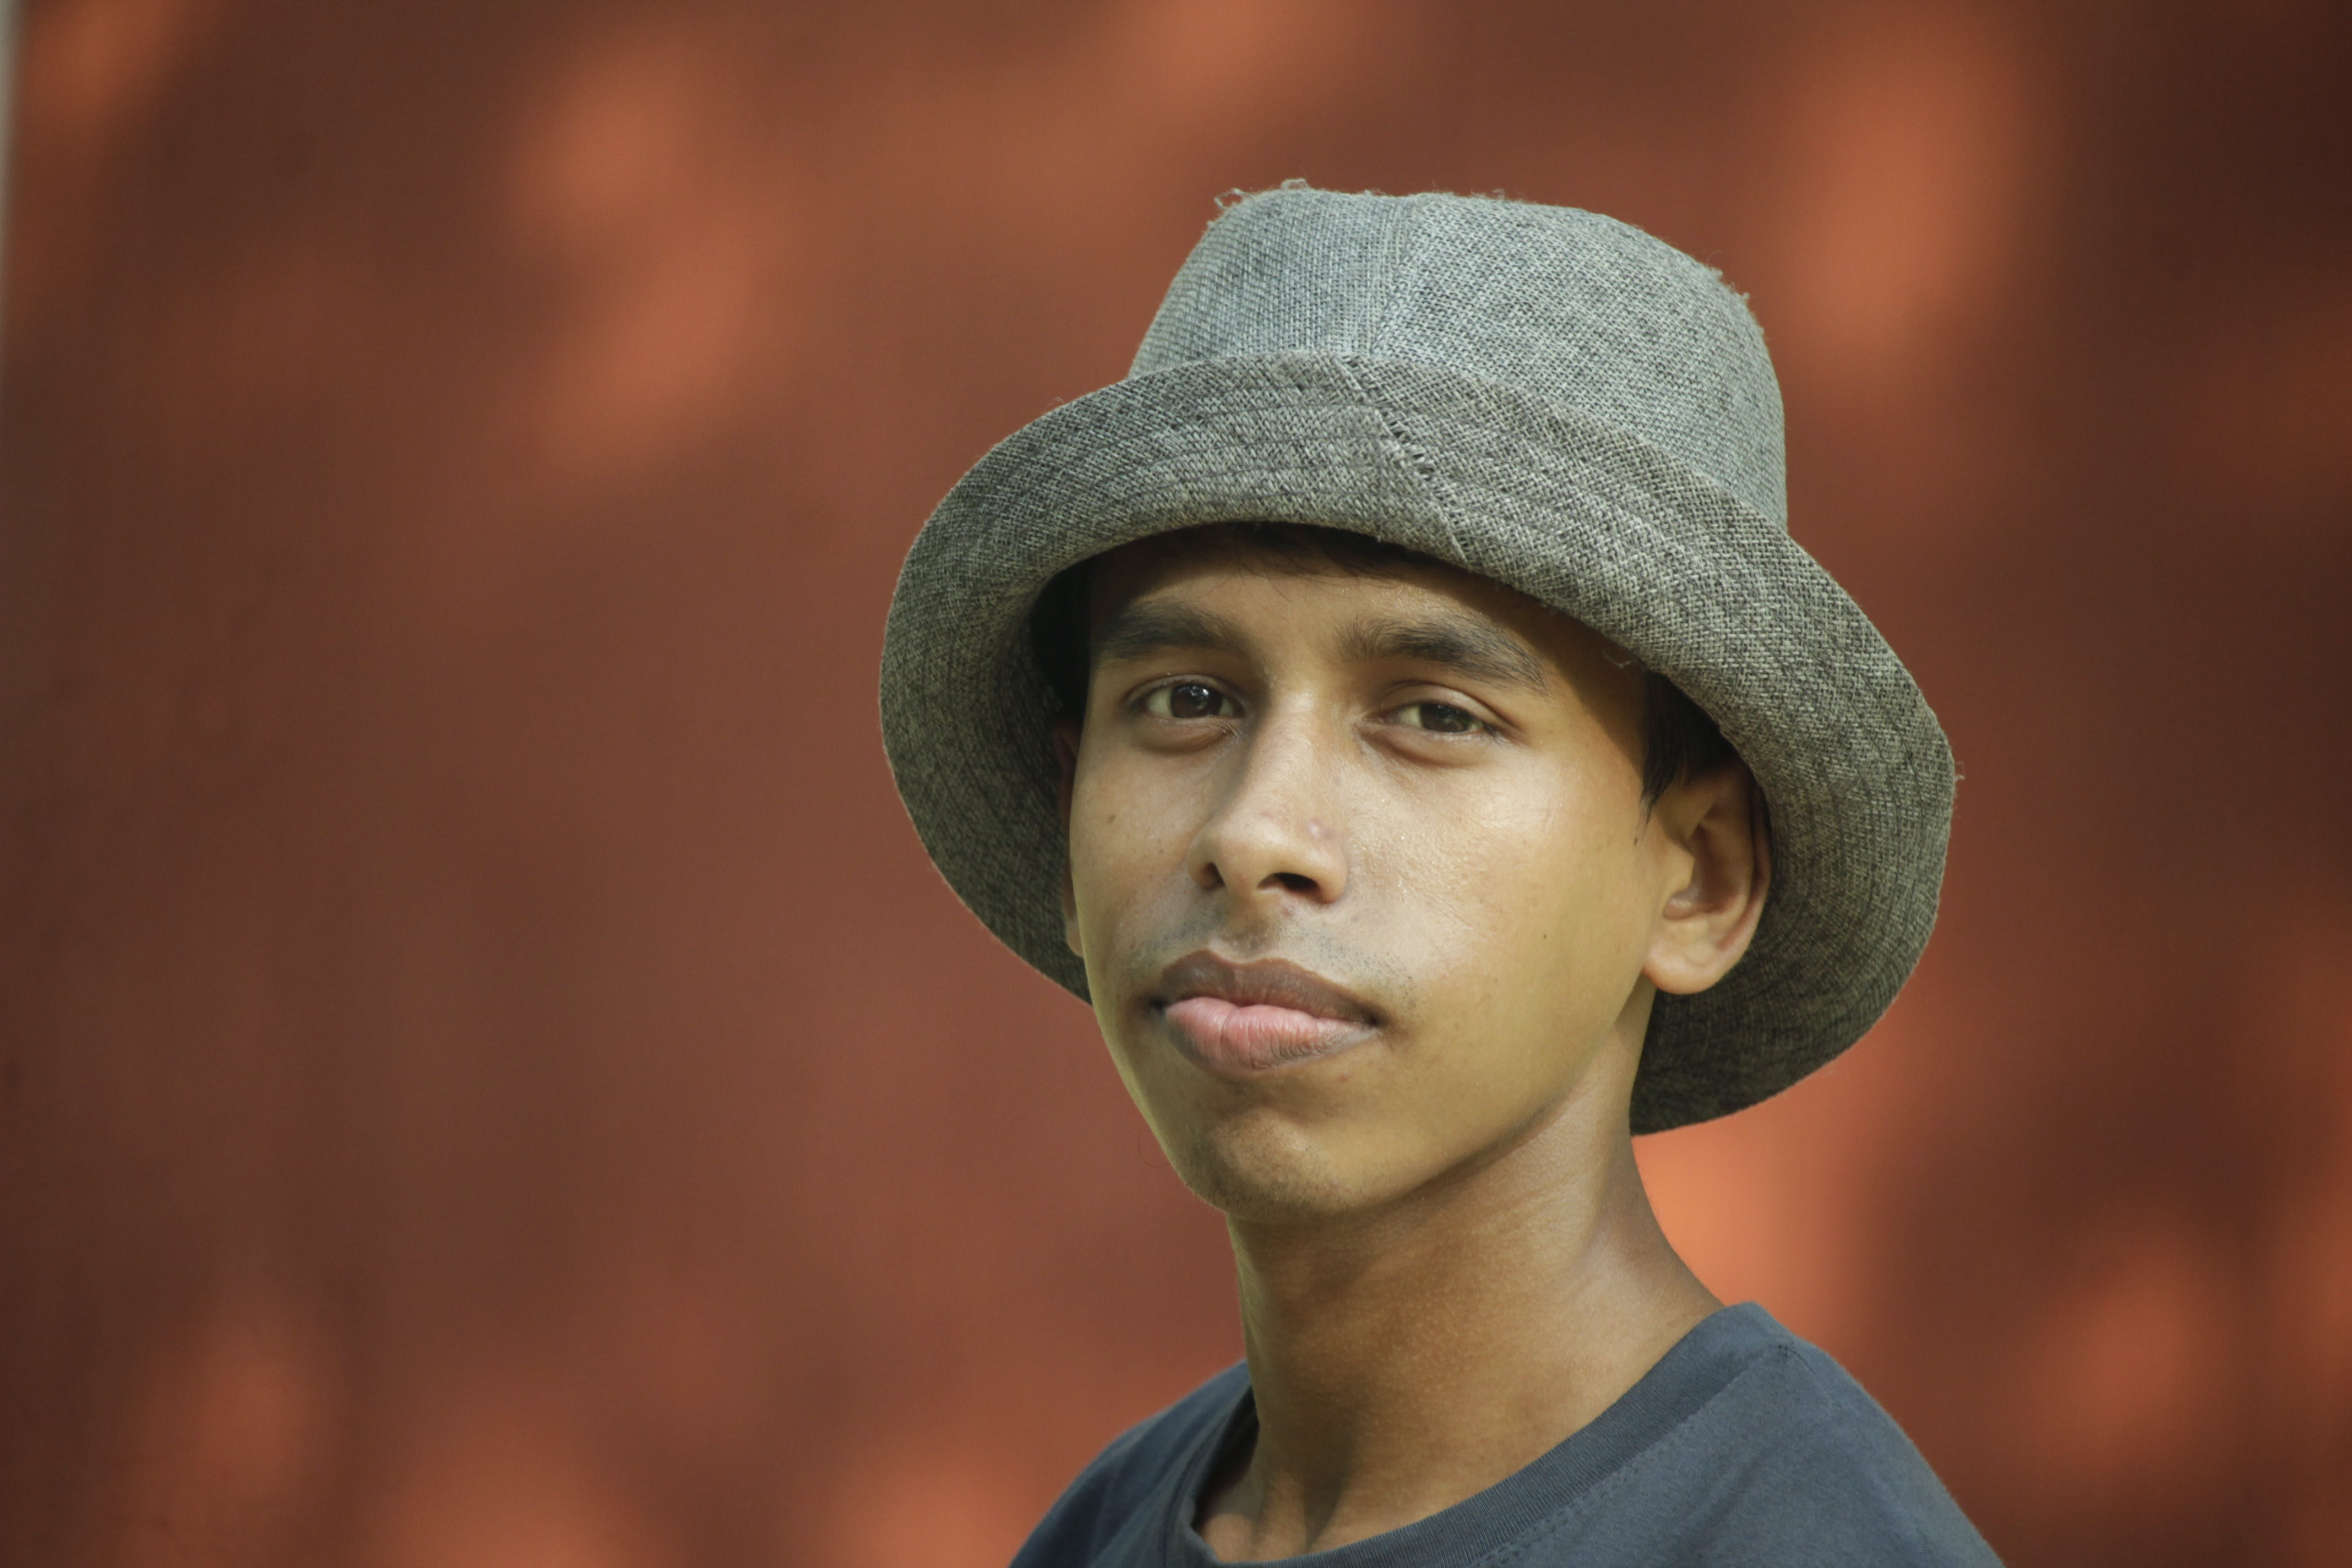 Selective Focus Photography of Man Wearing Gray Fedora Hat and Gray Crew-neck Shirt